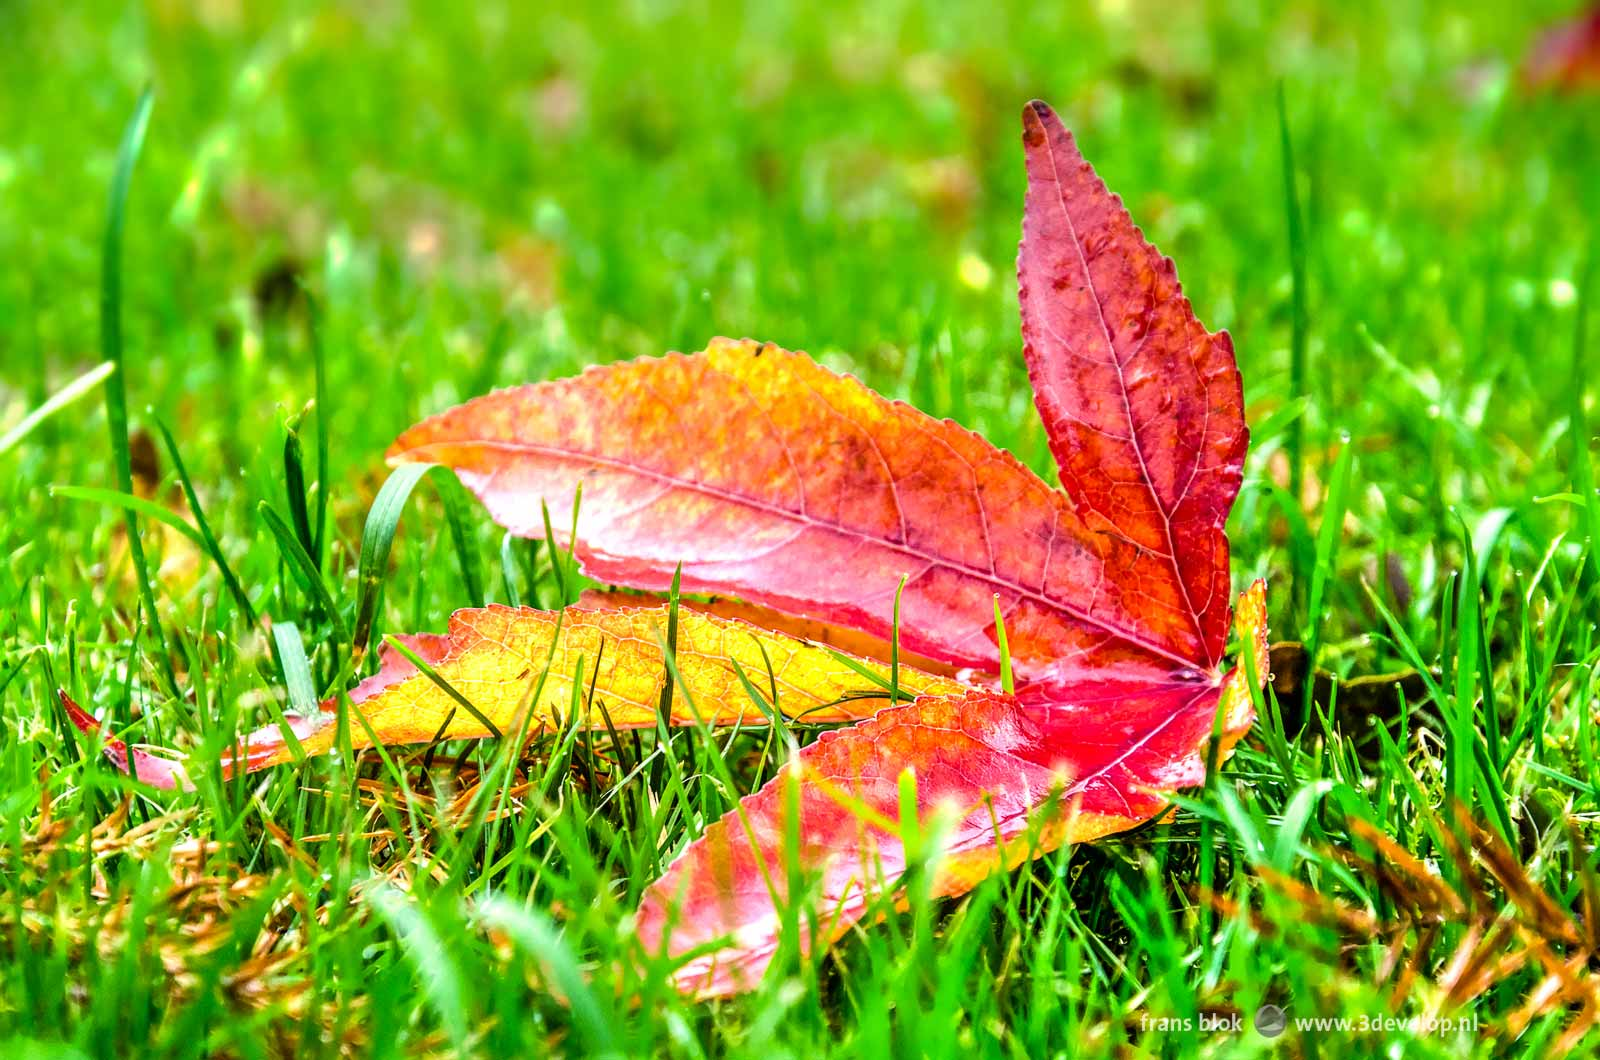 A freshly fallen leaf of a sweetgum tree, red with some yellow, in the grass in autumn